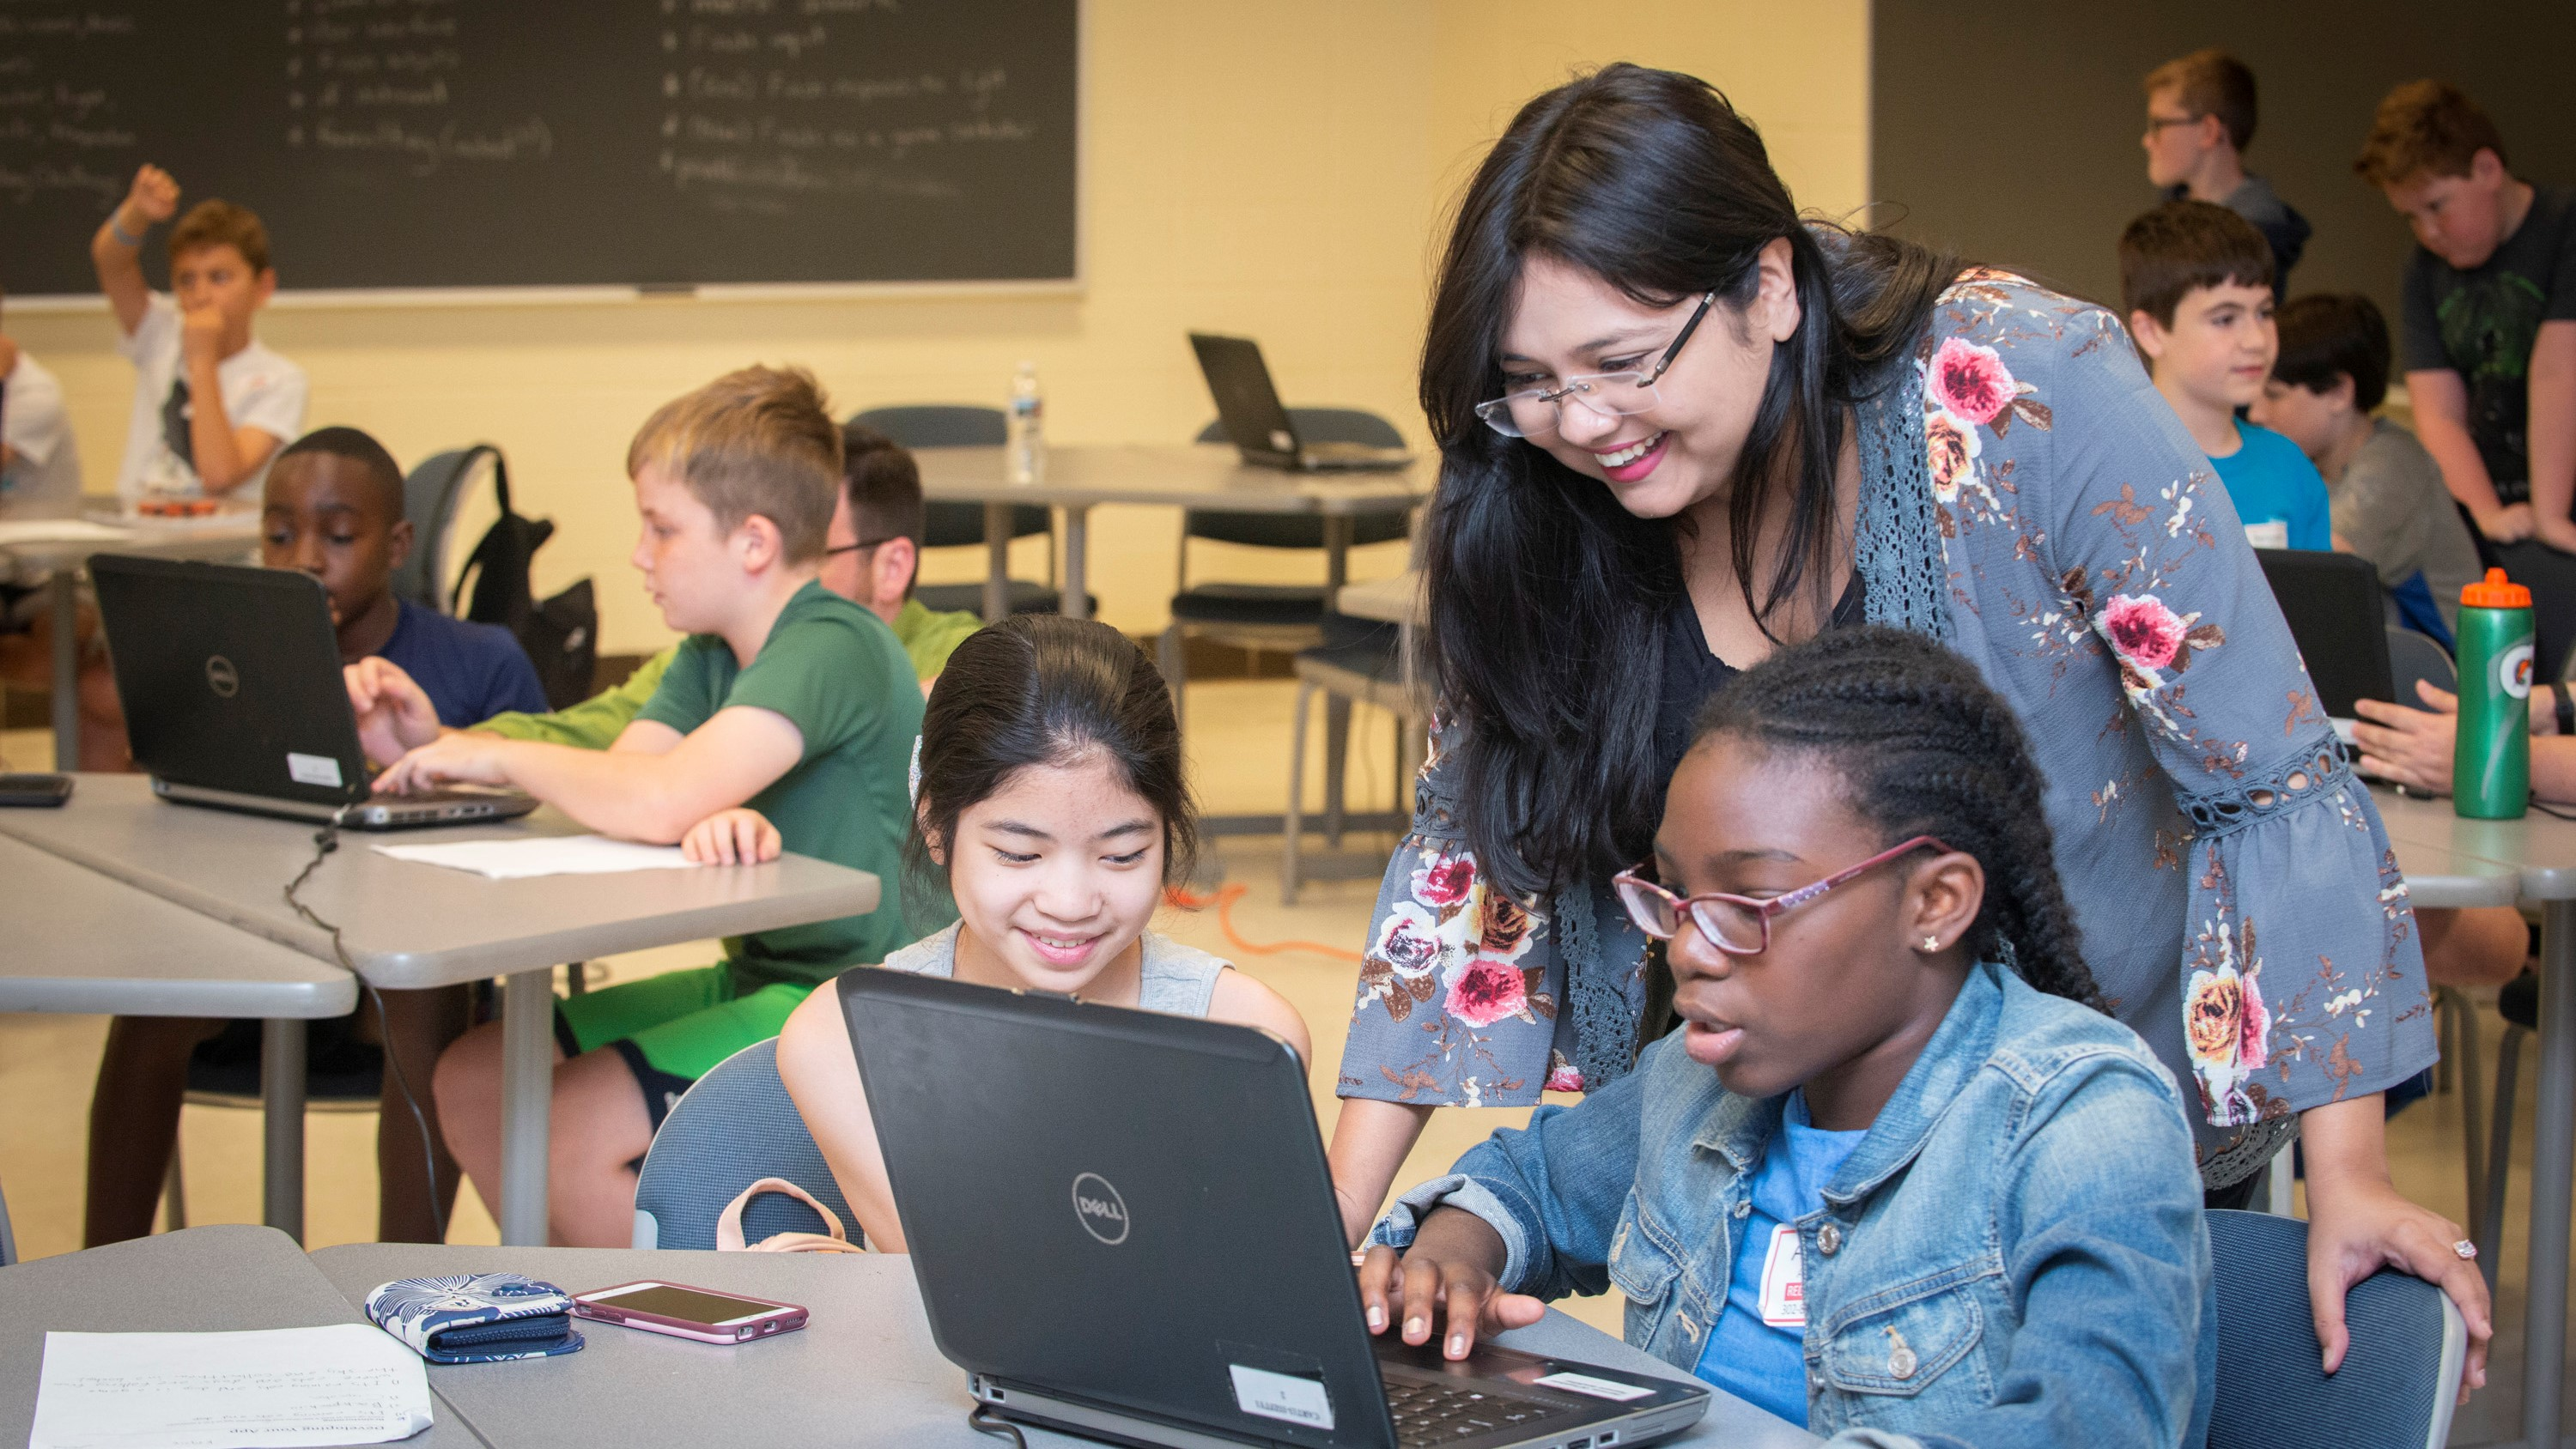 A University of Delaware student works on a computer science activity on a laptop with two middle school students.